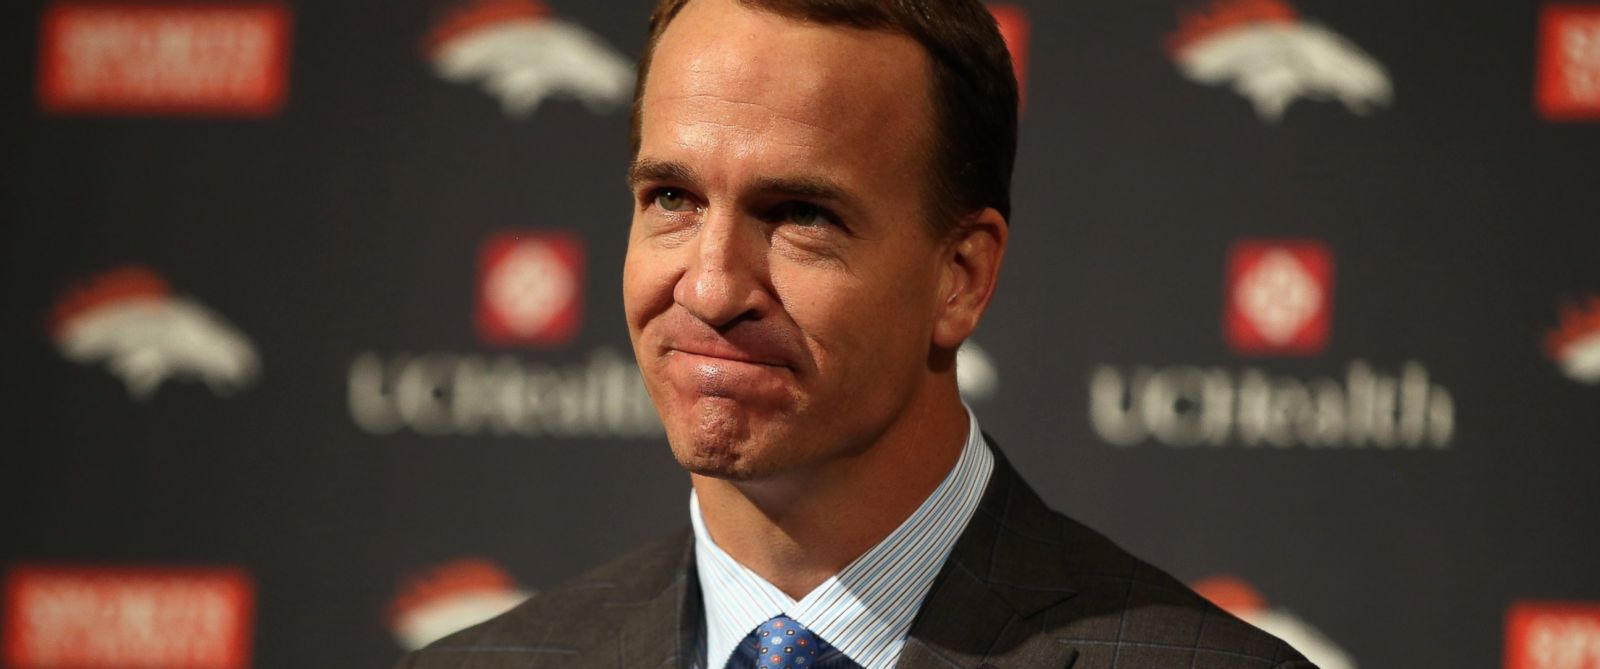 PHOTO: Quarterback Peyton Manning announces his retirement from the NFL at the UCHealth Training Center on March 7, 2016 in Englewood, Colo.